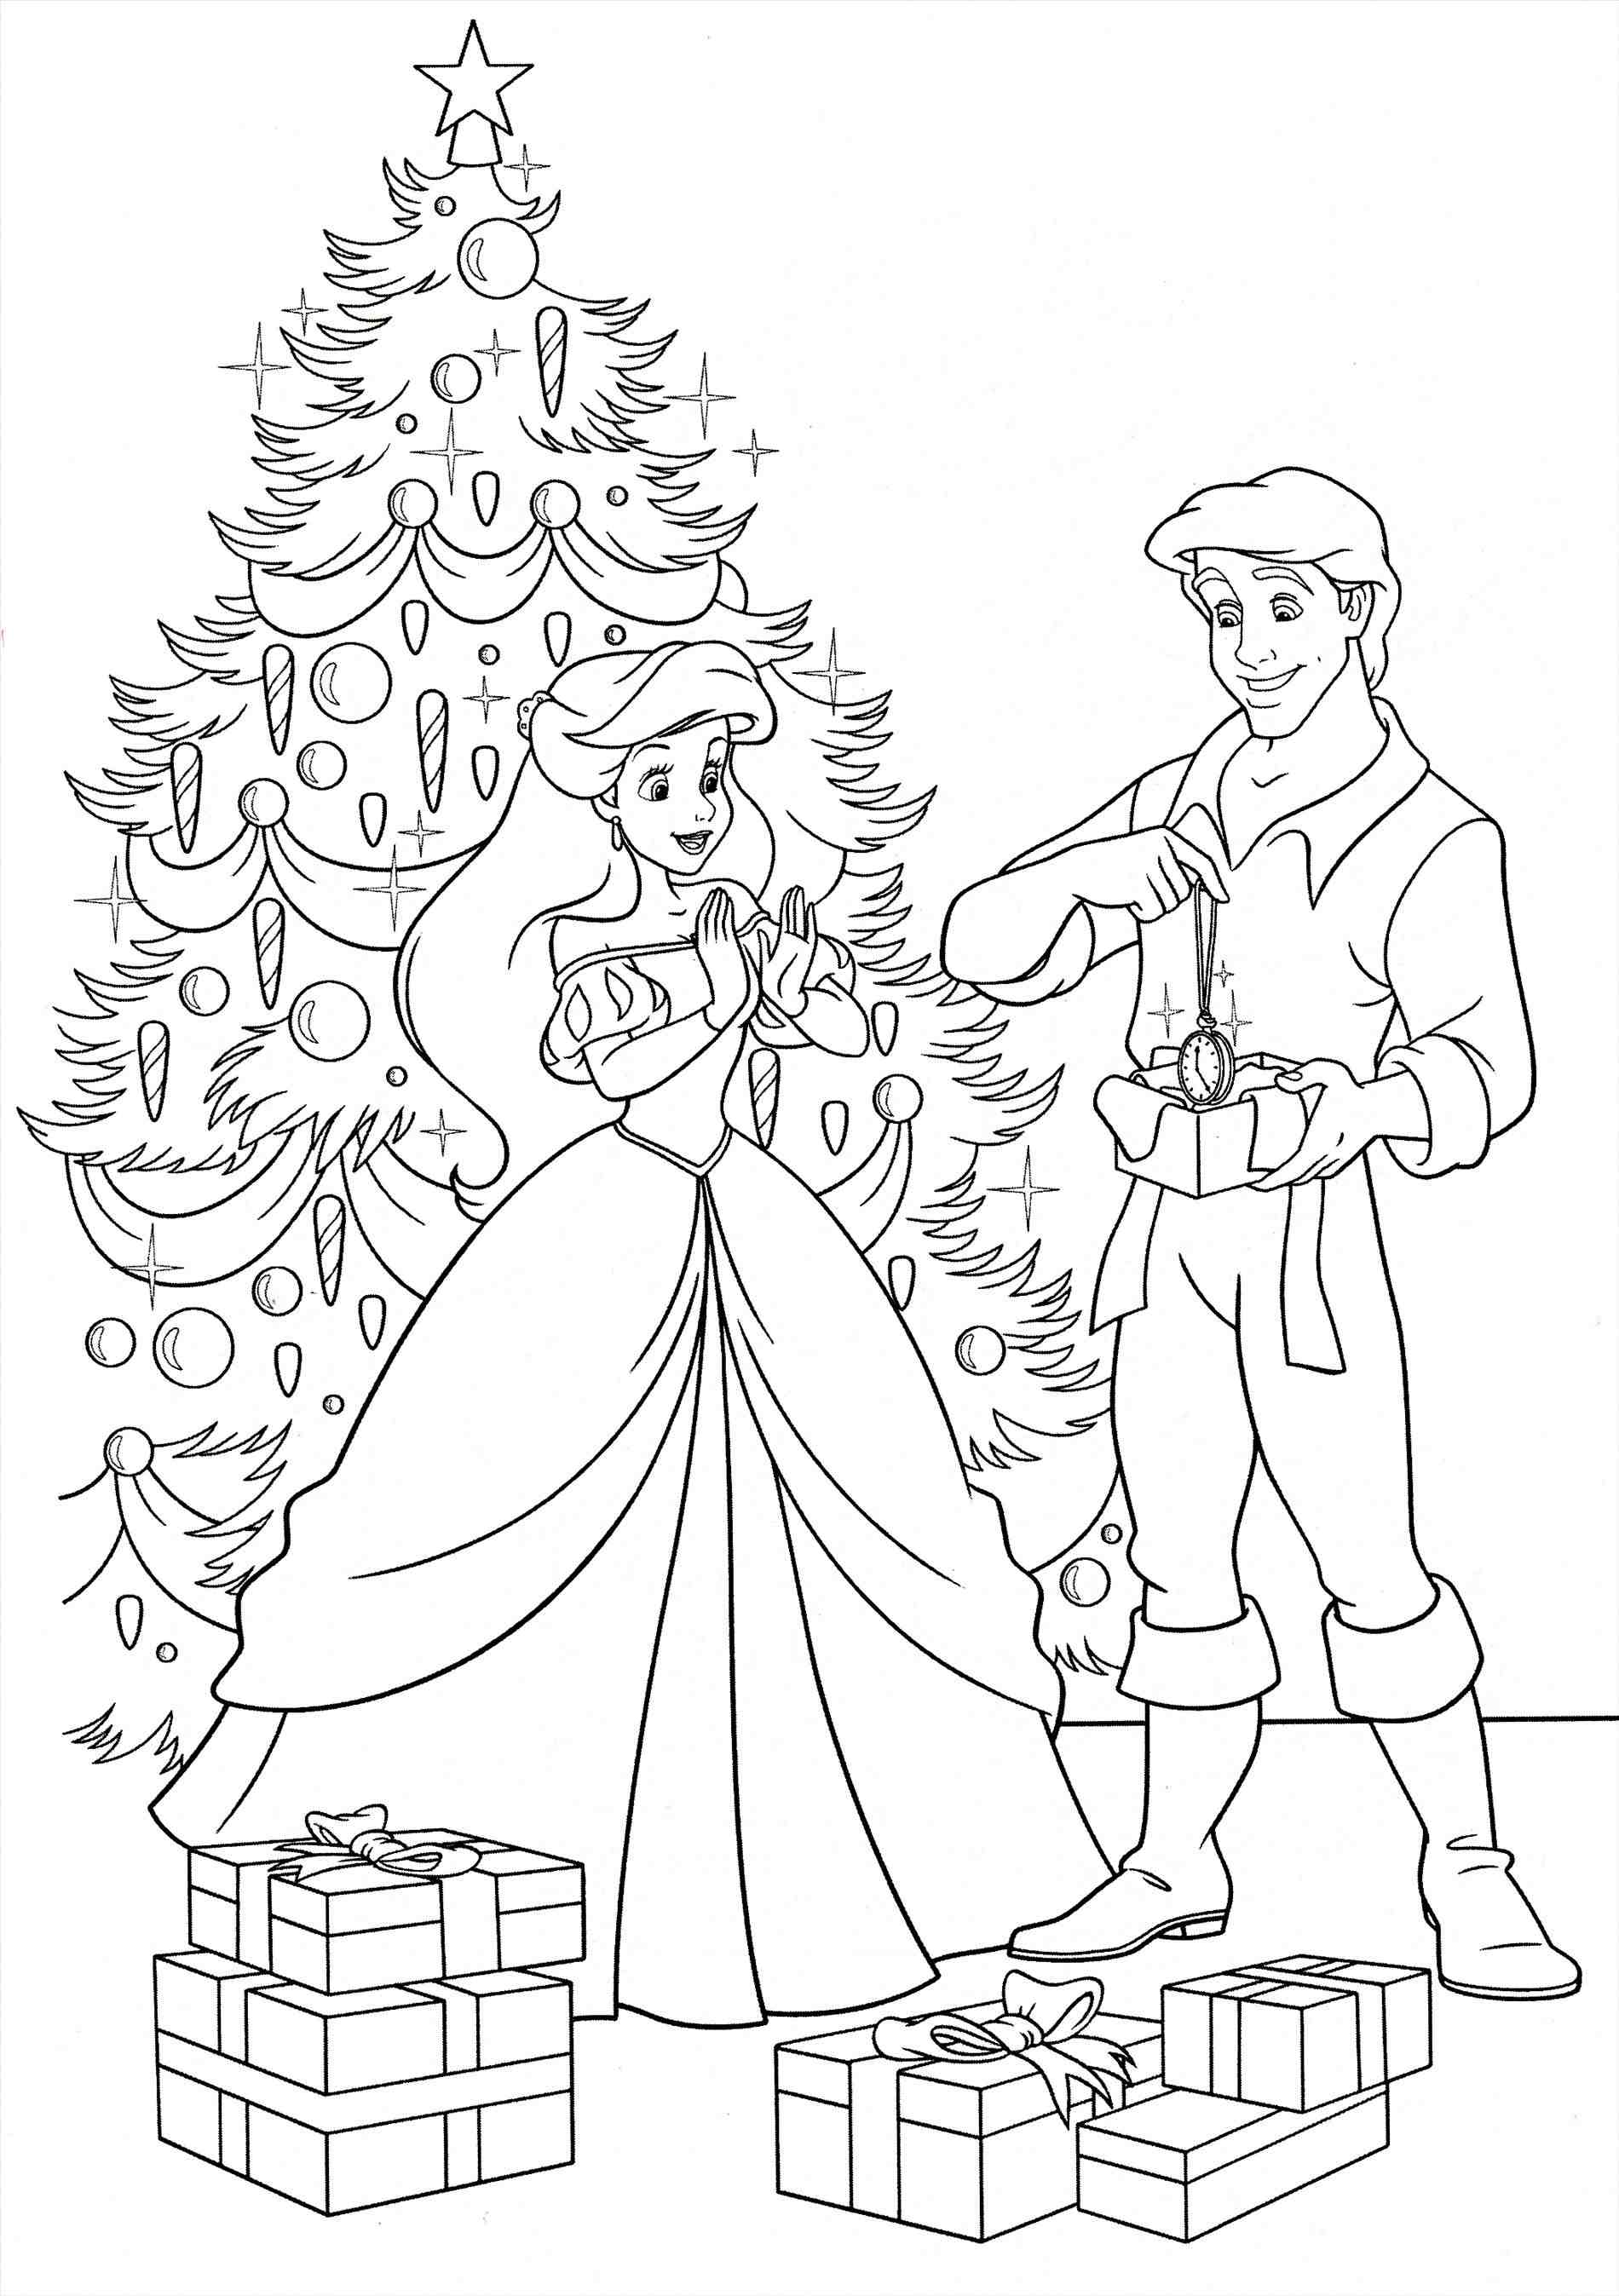 Free Disney Christmas Coloring Pages With New Princess Collection Printable